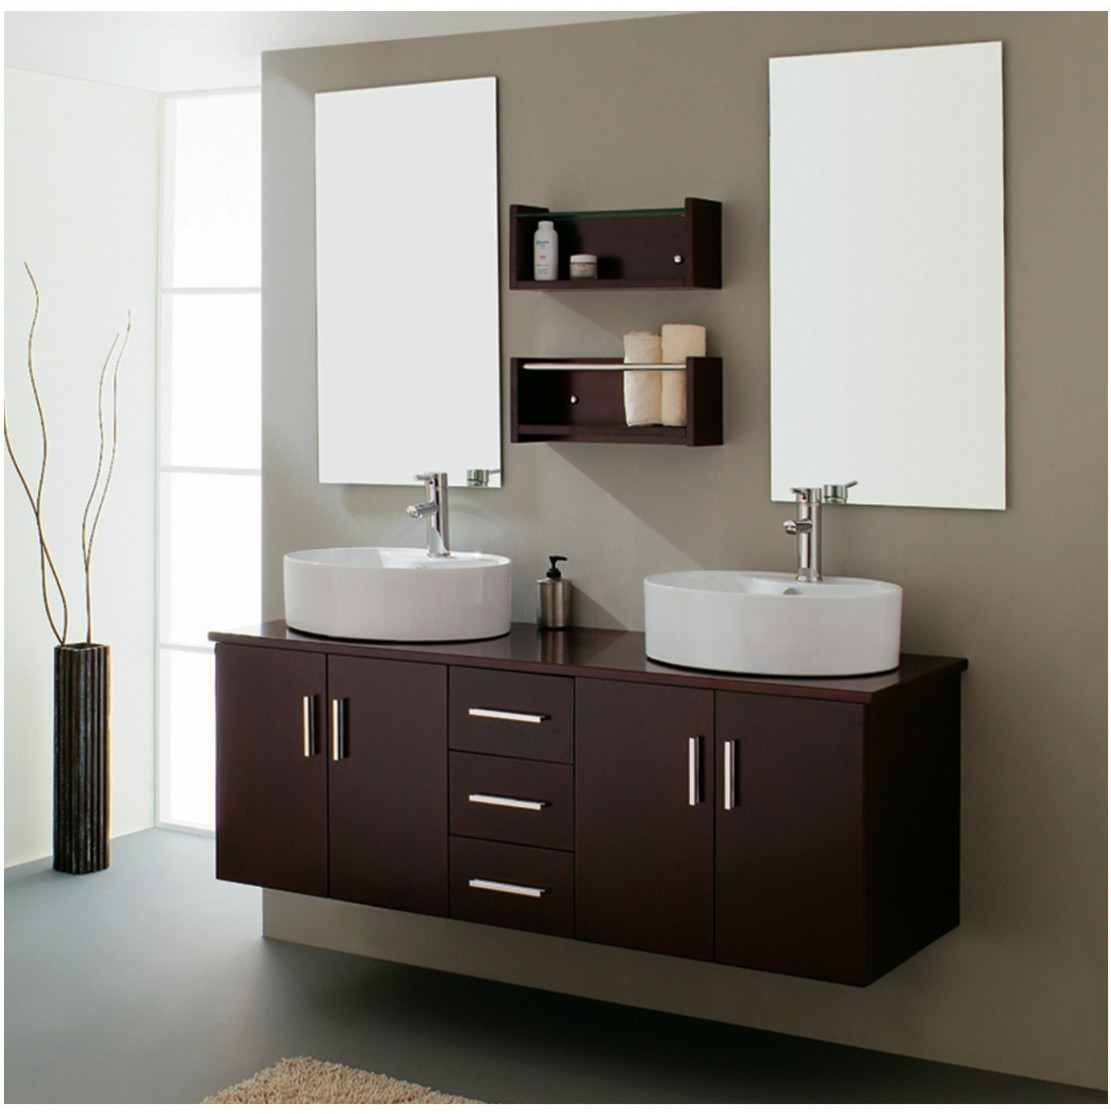 Waschbecken Modernes Design Modern Bathroom Double Sink Home Decorating Ideas